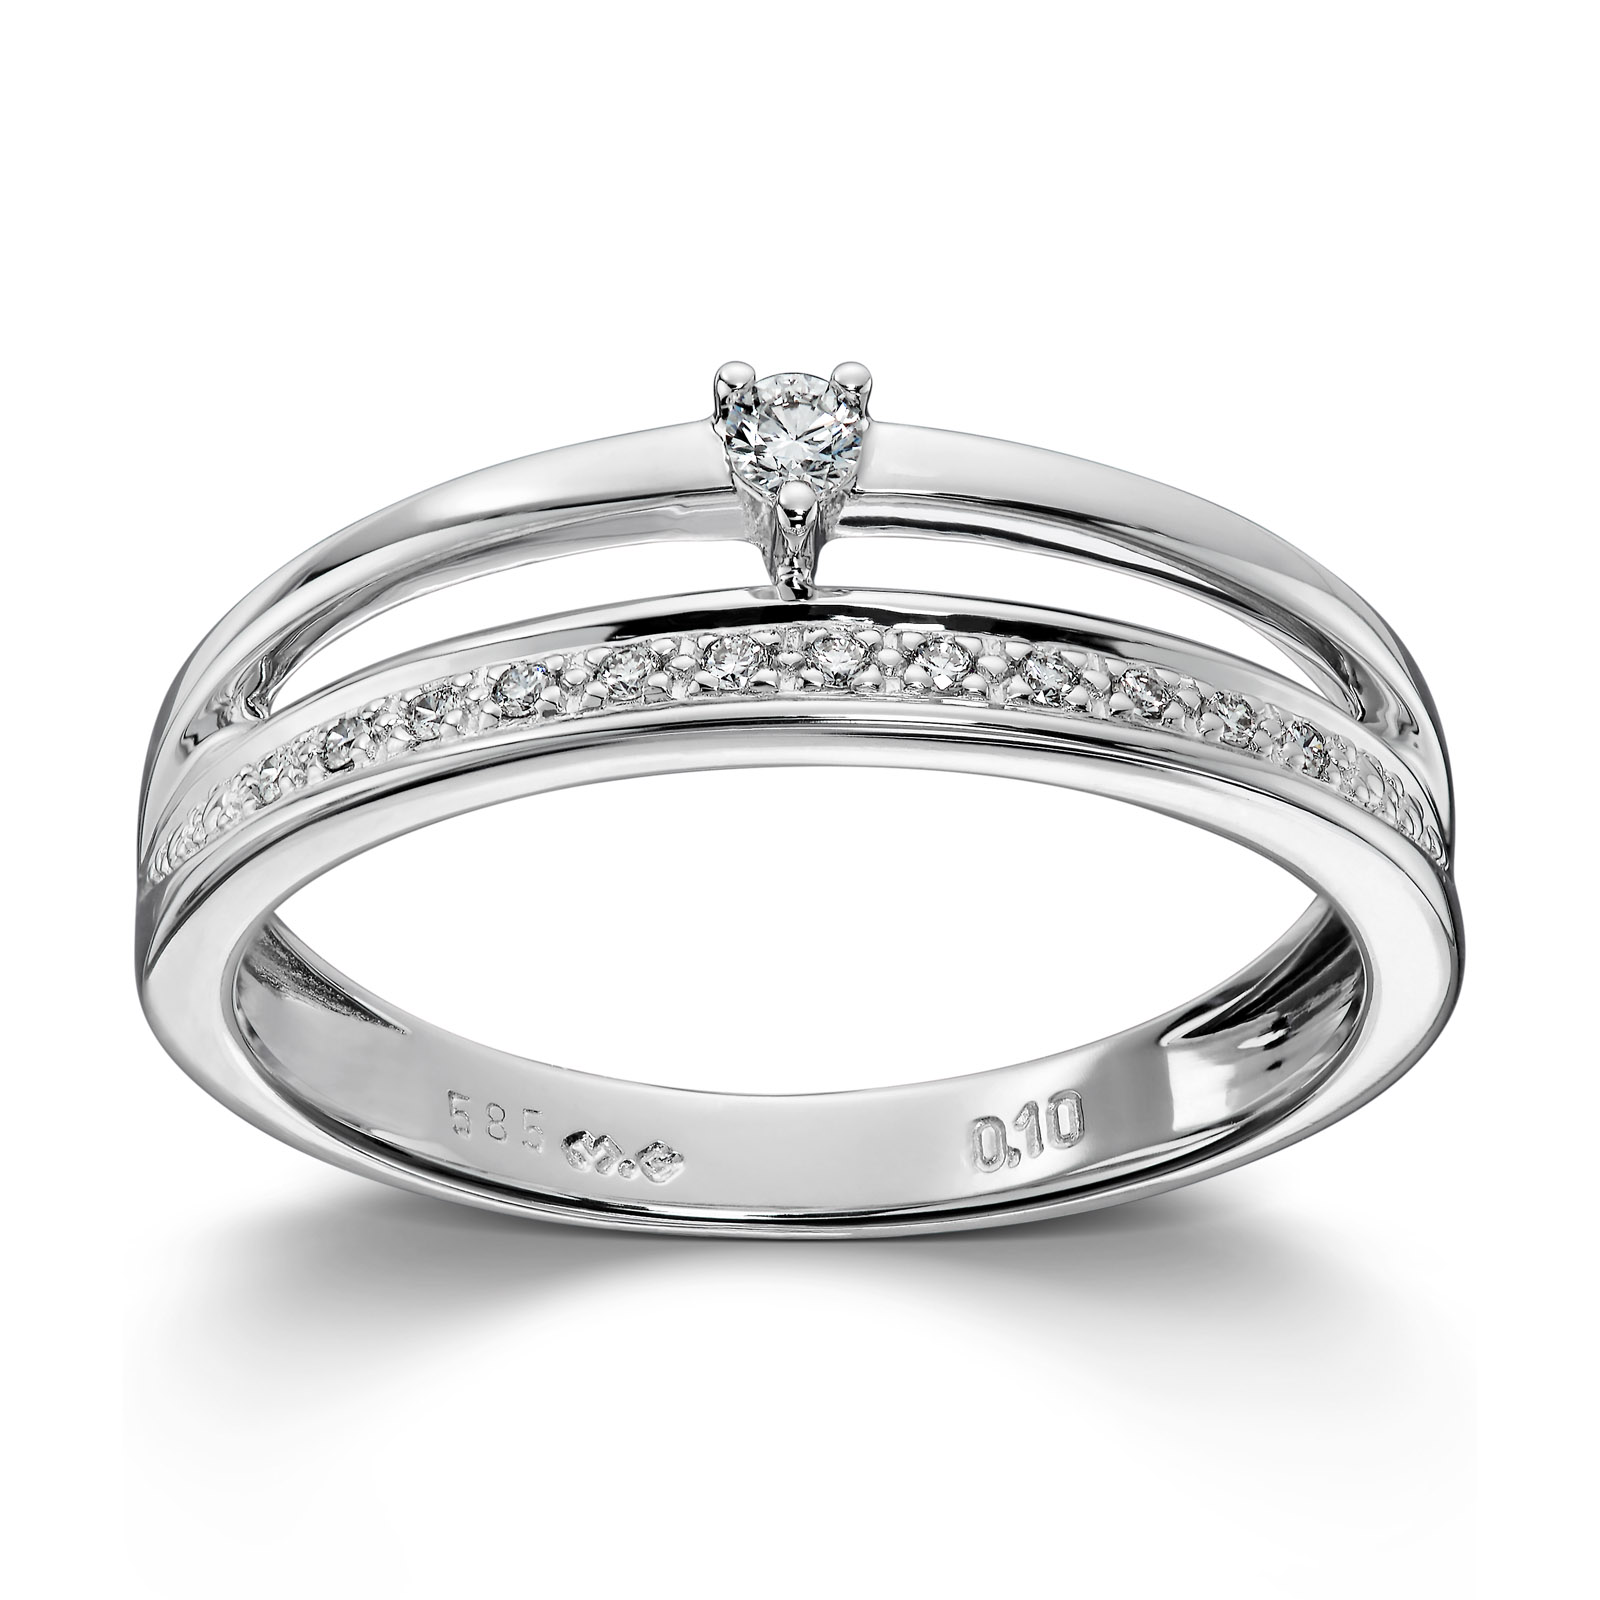 Mestergull Elegant ring i hvitt gull med diamanter MG DIAMONDS Ring